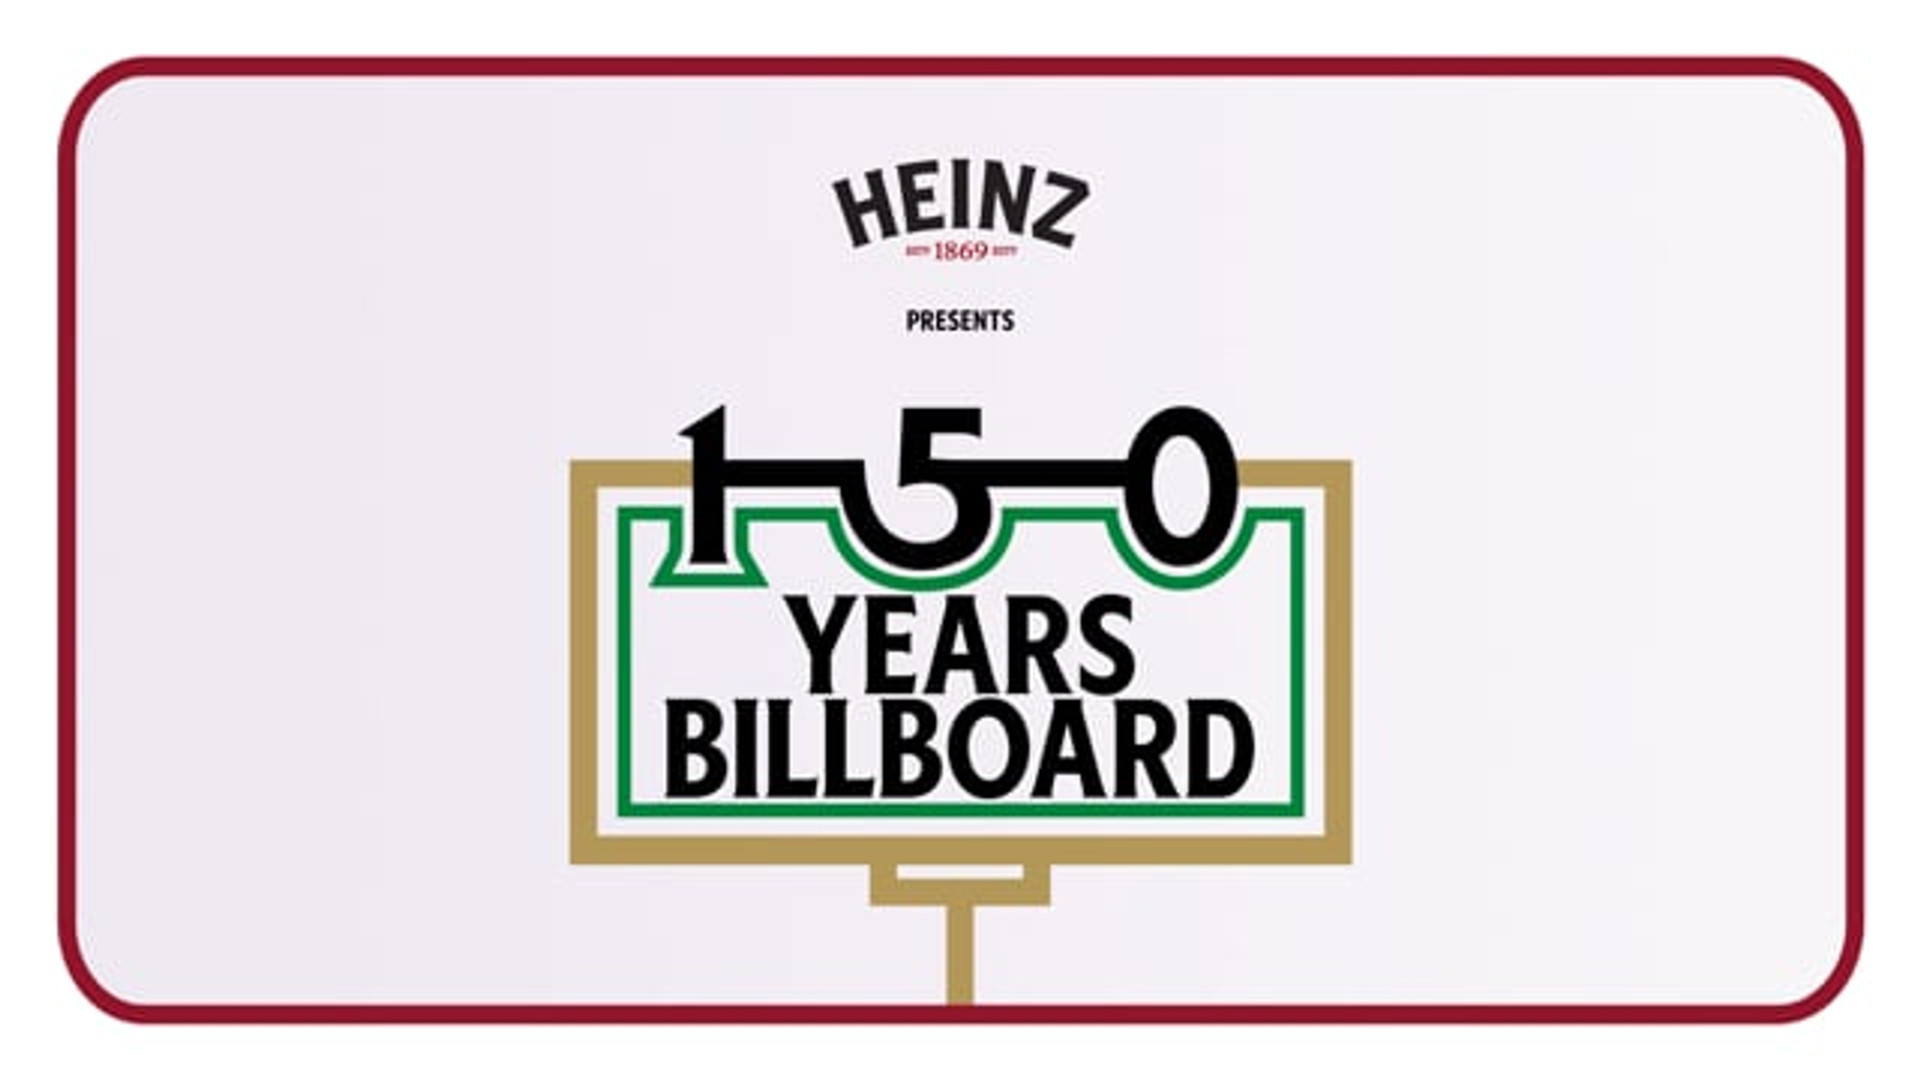 150 years billboard